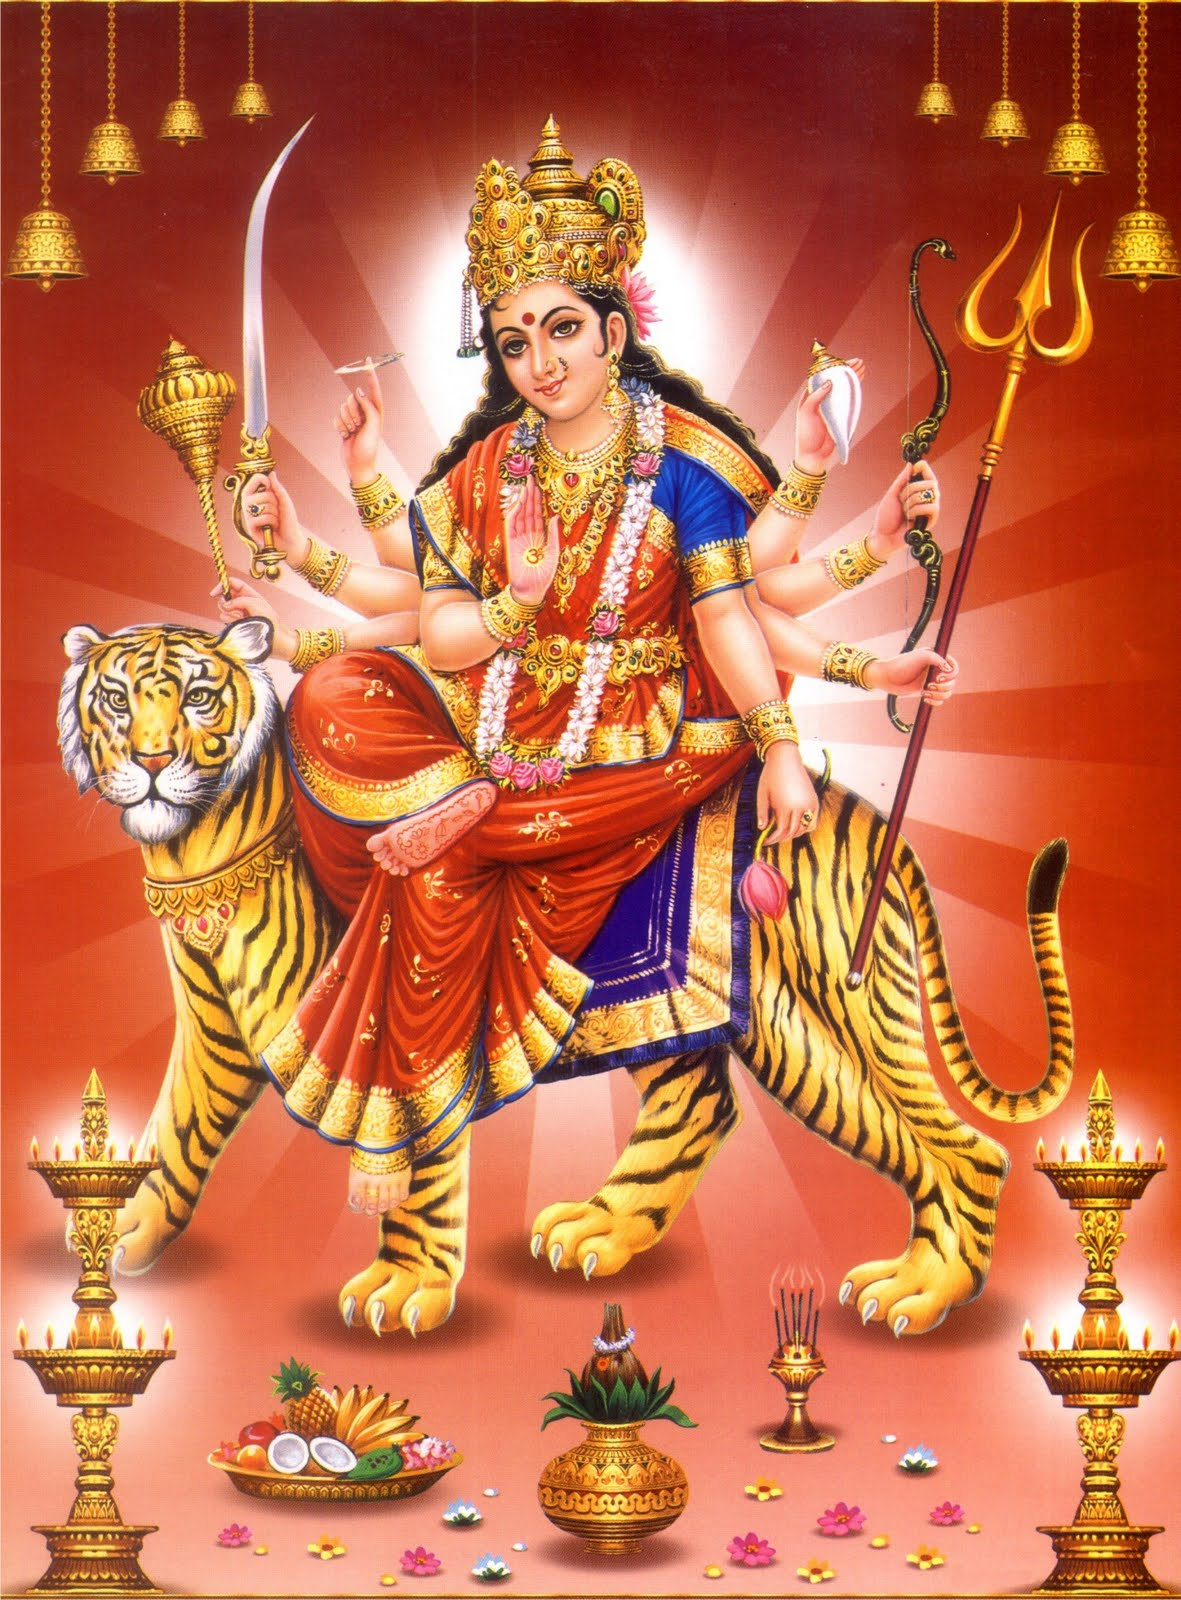 Who are Durga Devi and Ambe Maa